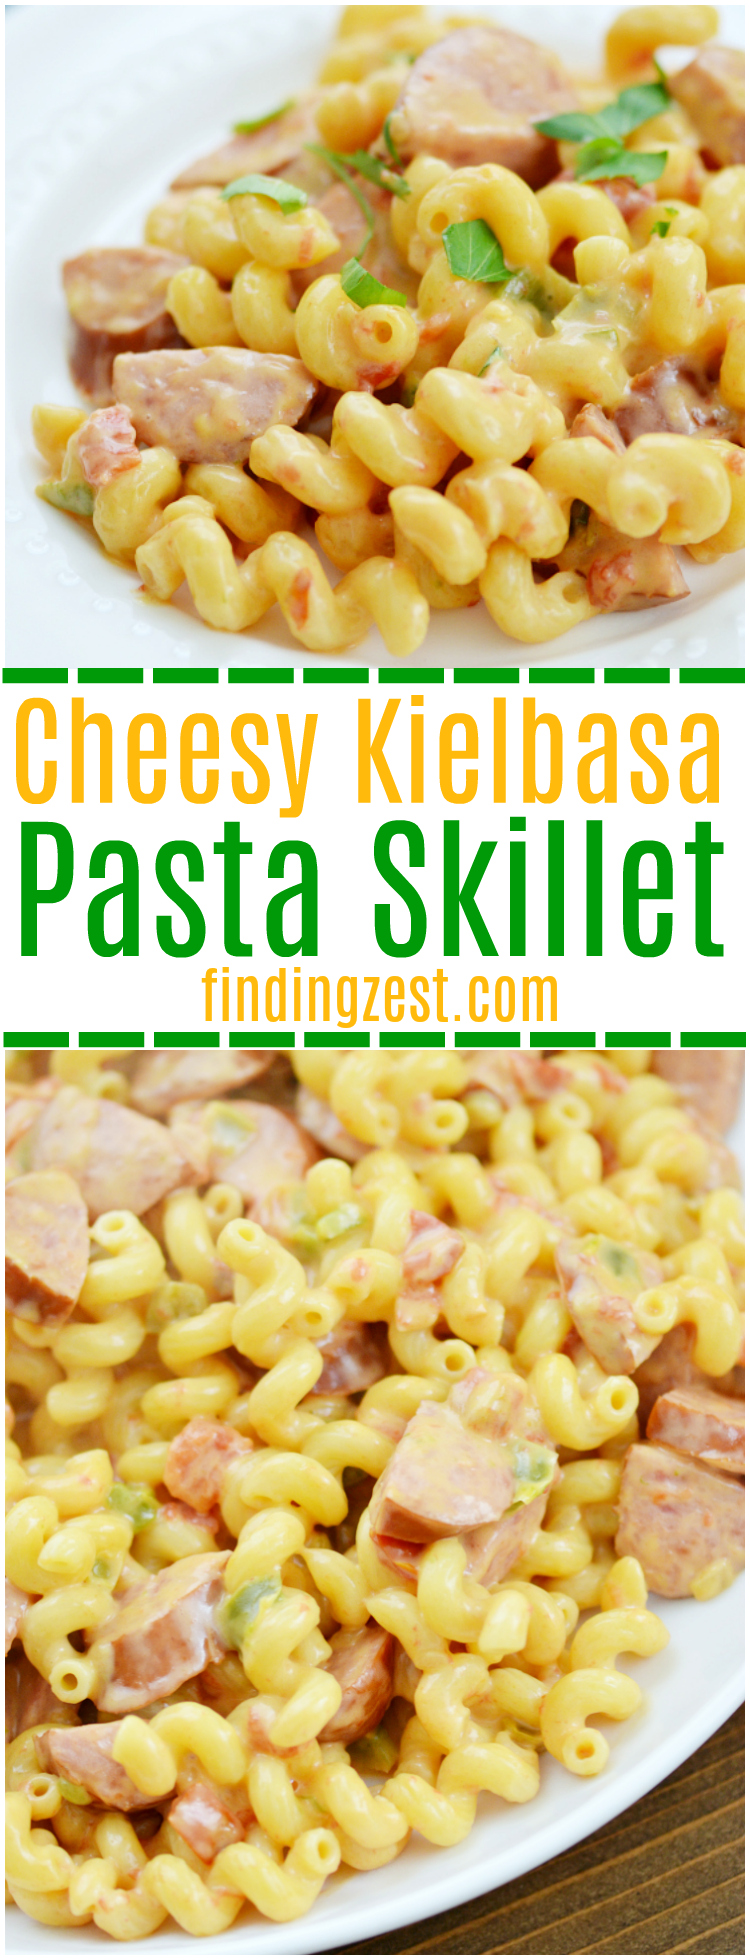 Try out this Cheesy Kielbasa Pasta recipe for an easy weeknight dinner solution! Loaded with flavor, this kielbasa recipe combines Velveeta, Rotel and pasta into a delicious dinner with a spicy kick. Your whole family will love this kielbasa sausage meal.